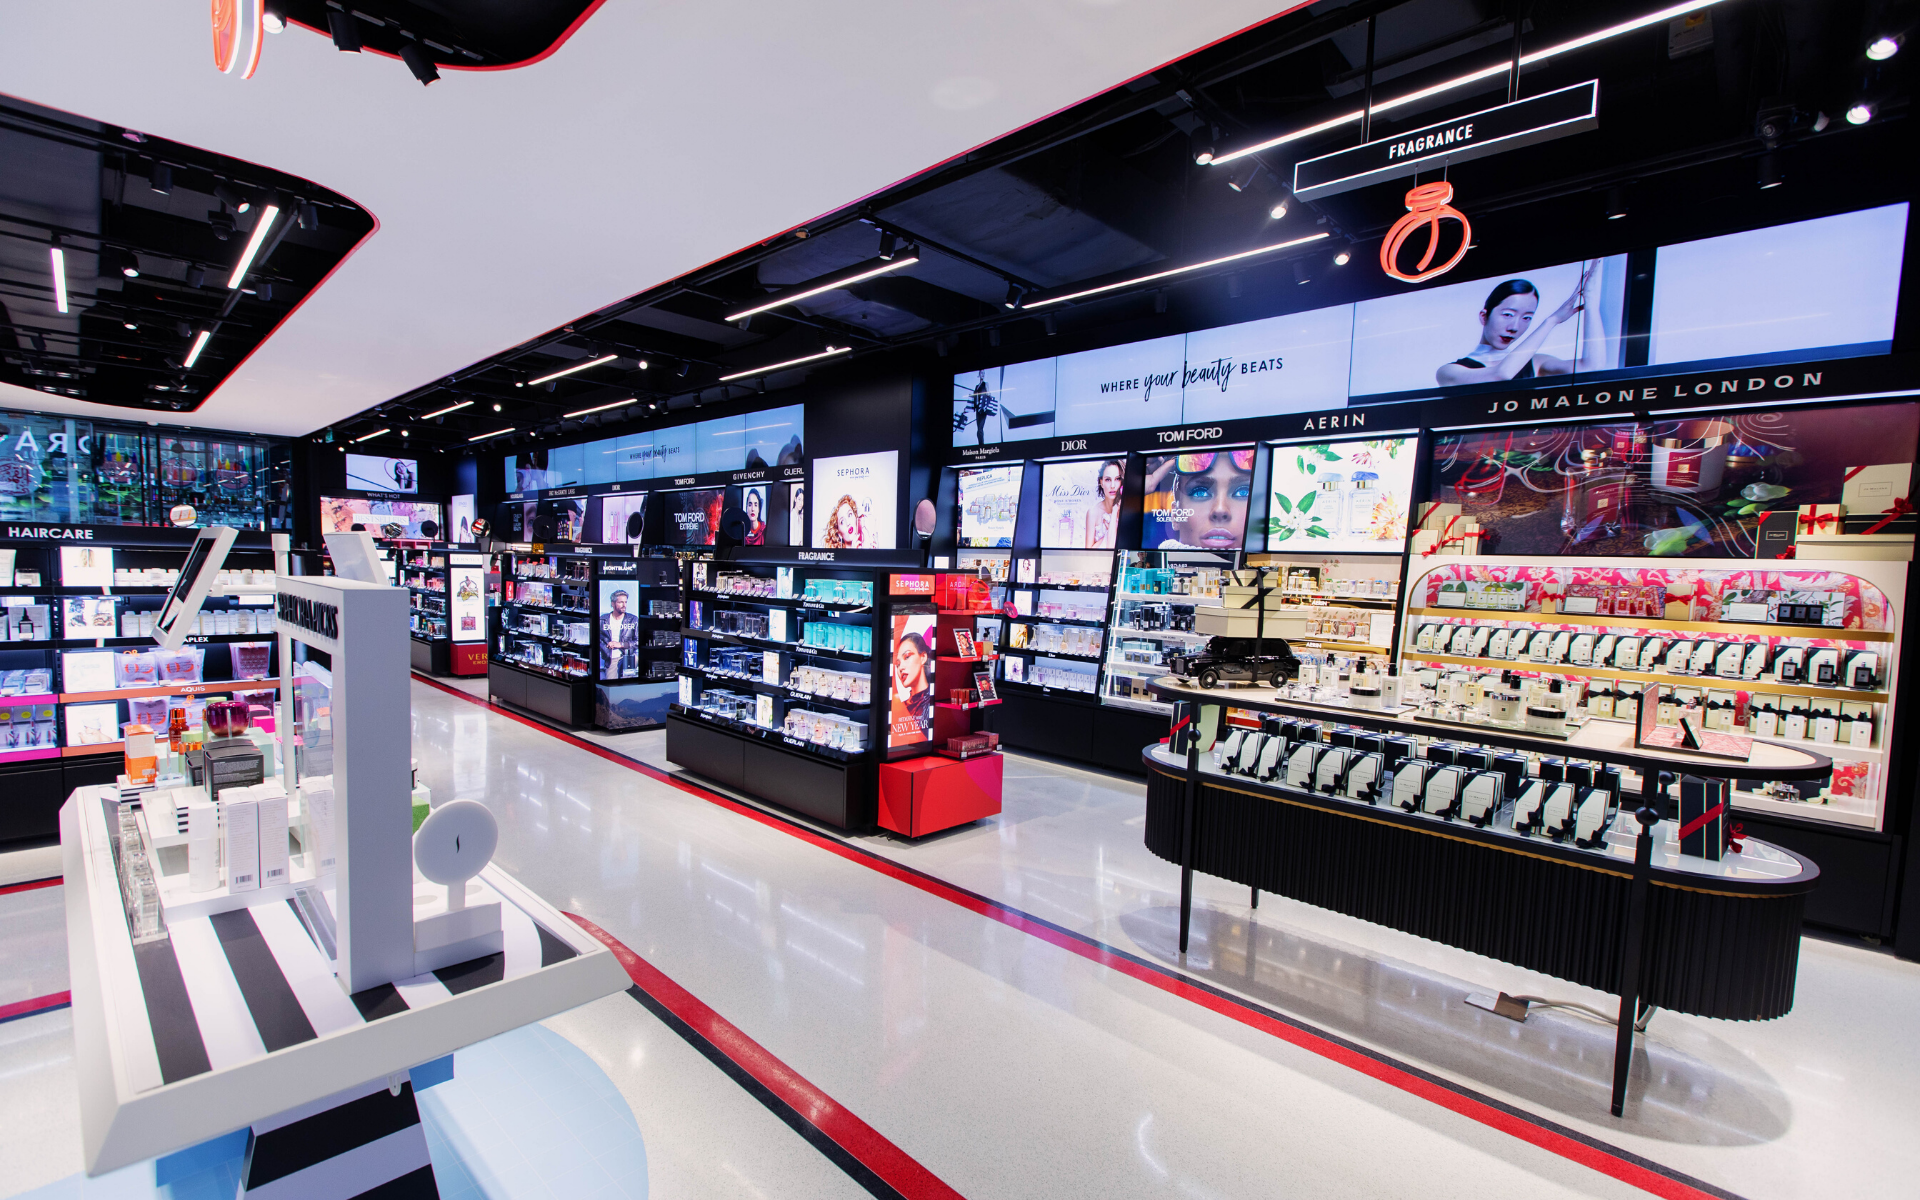 5 Things You Should Know About Sephora's Biggest Store in Malaysia